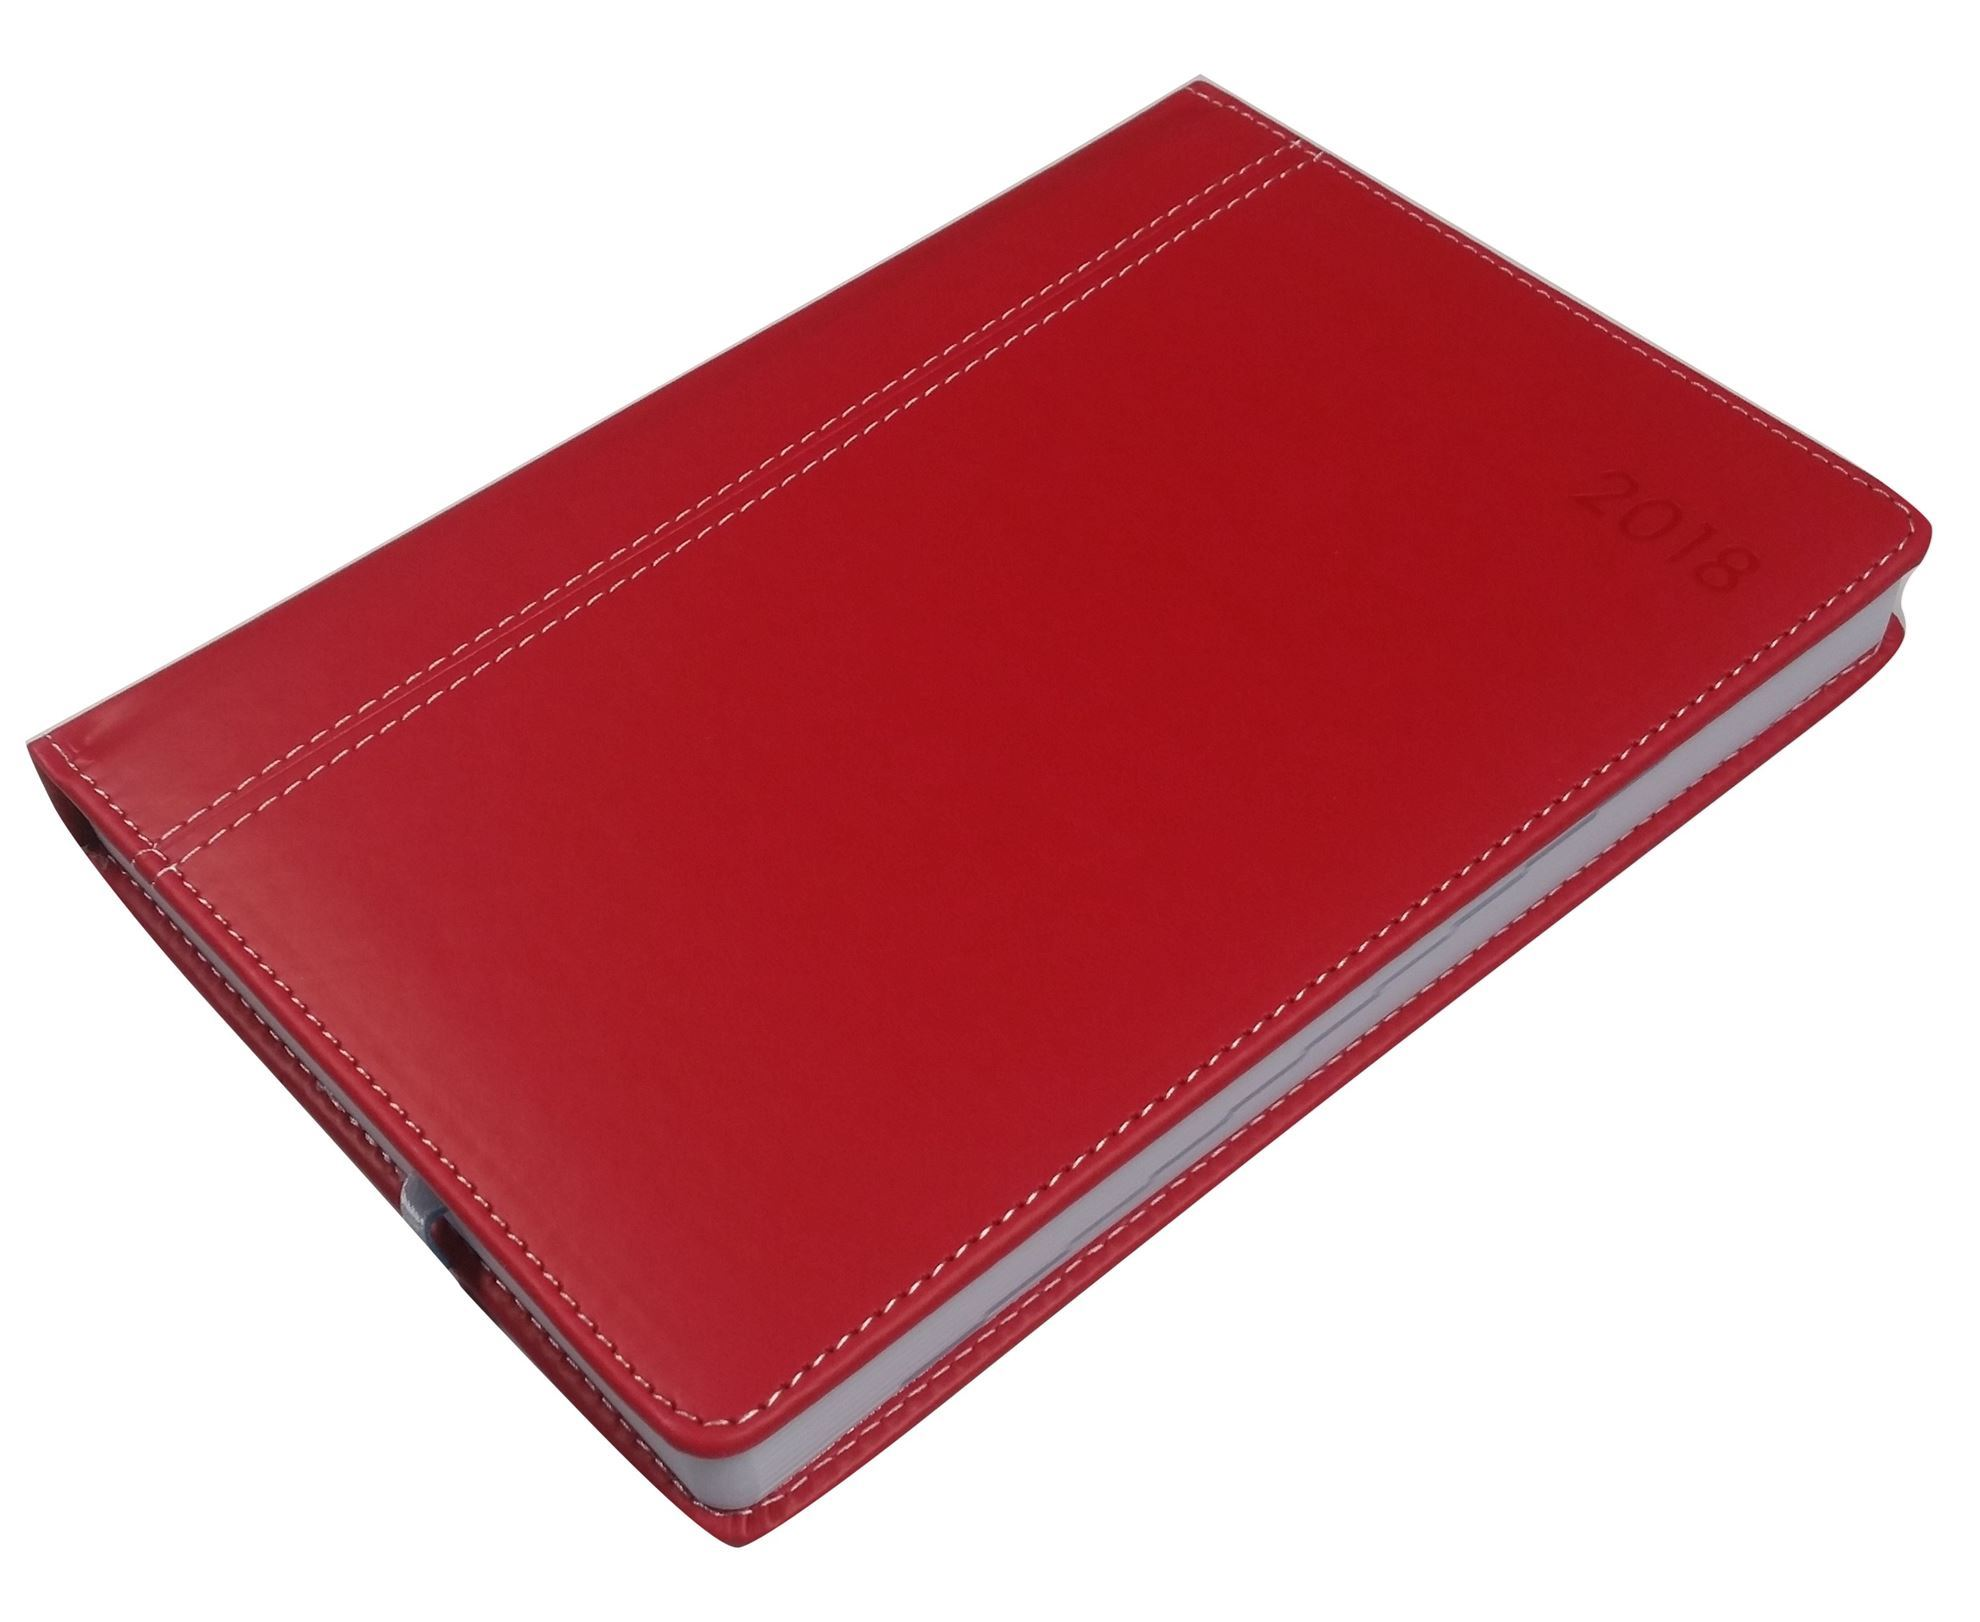 SOS Exec. Appointment Suede Diary (Red) 1-DAY